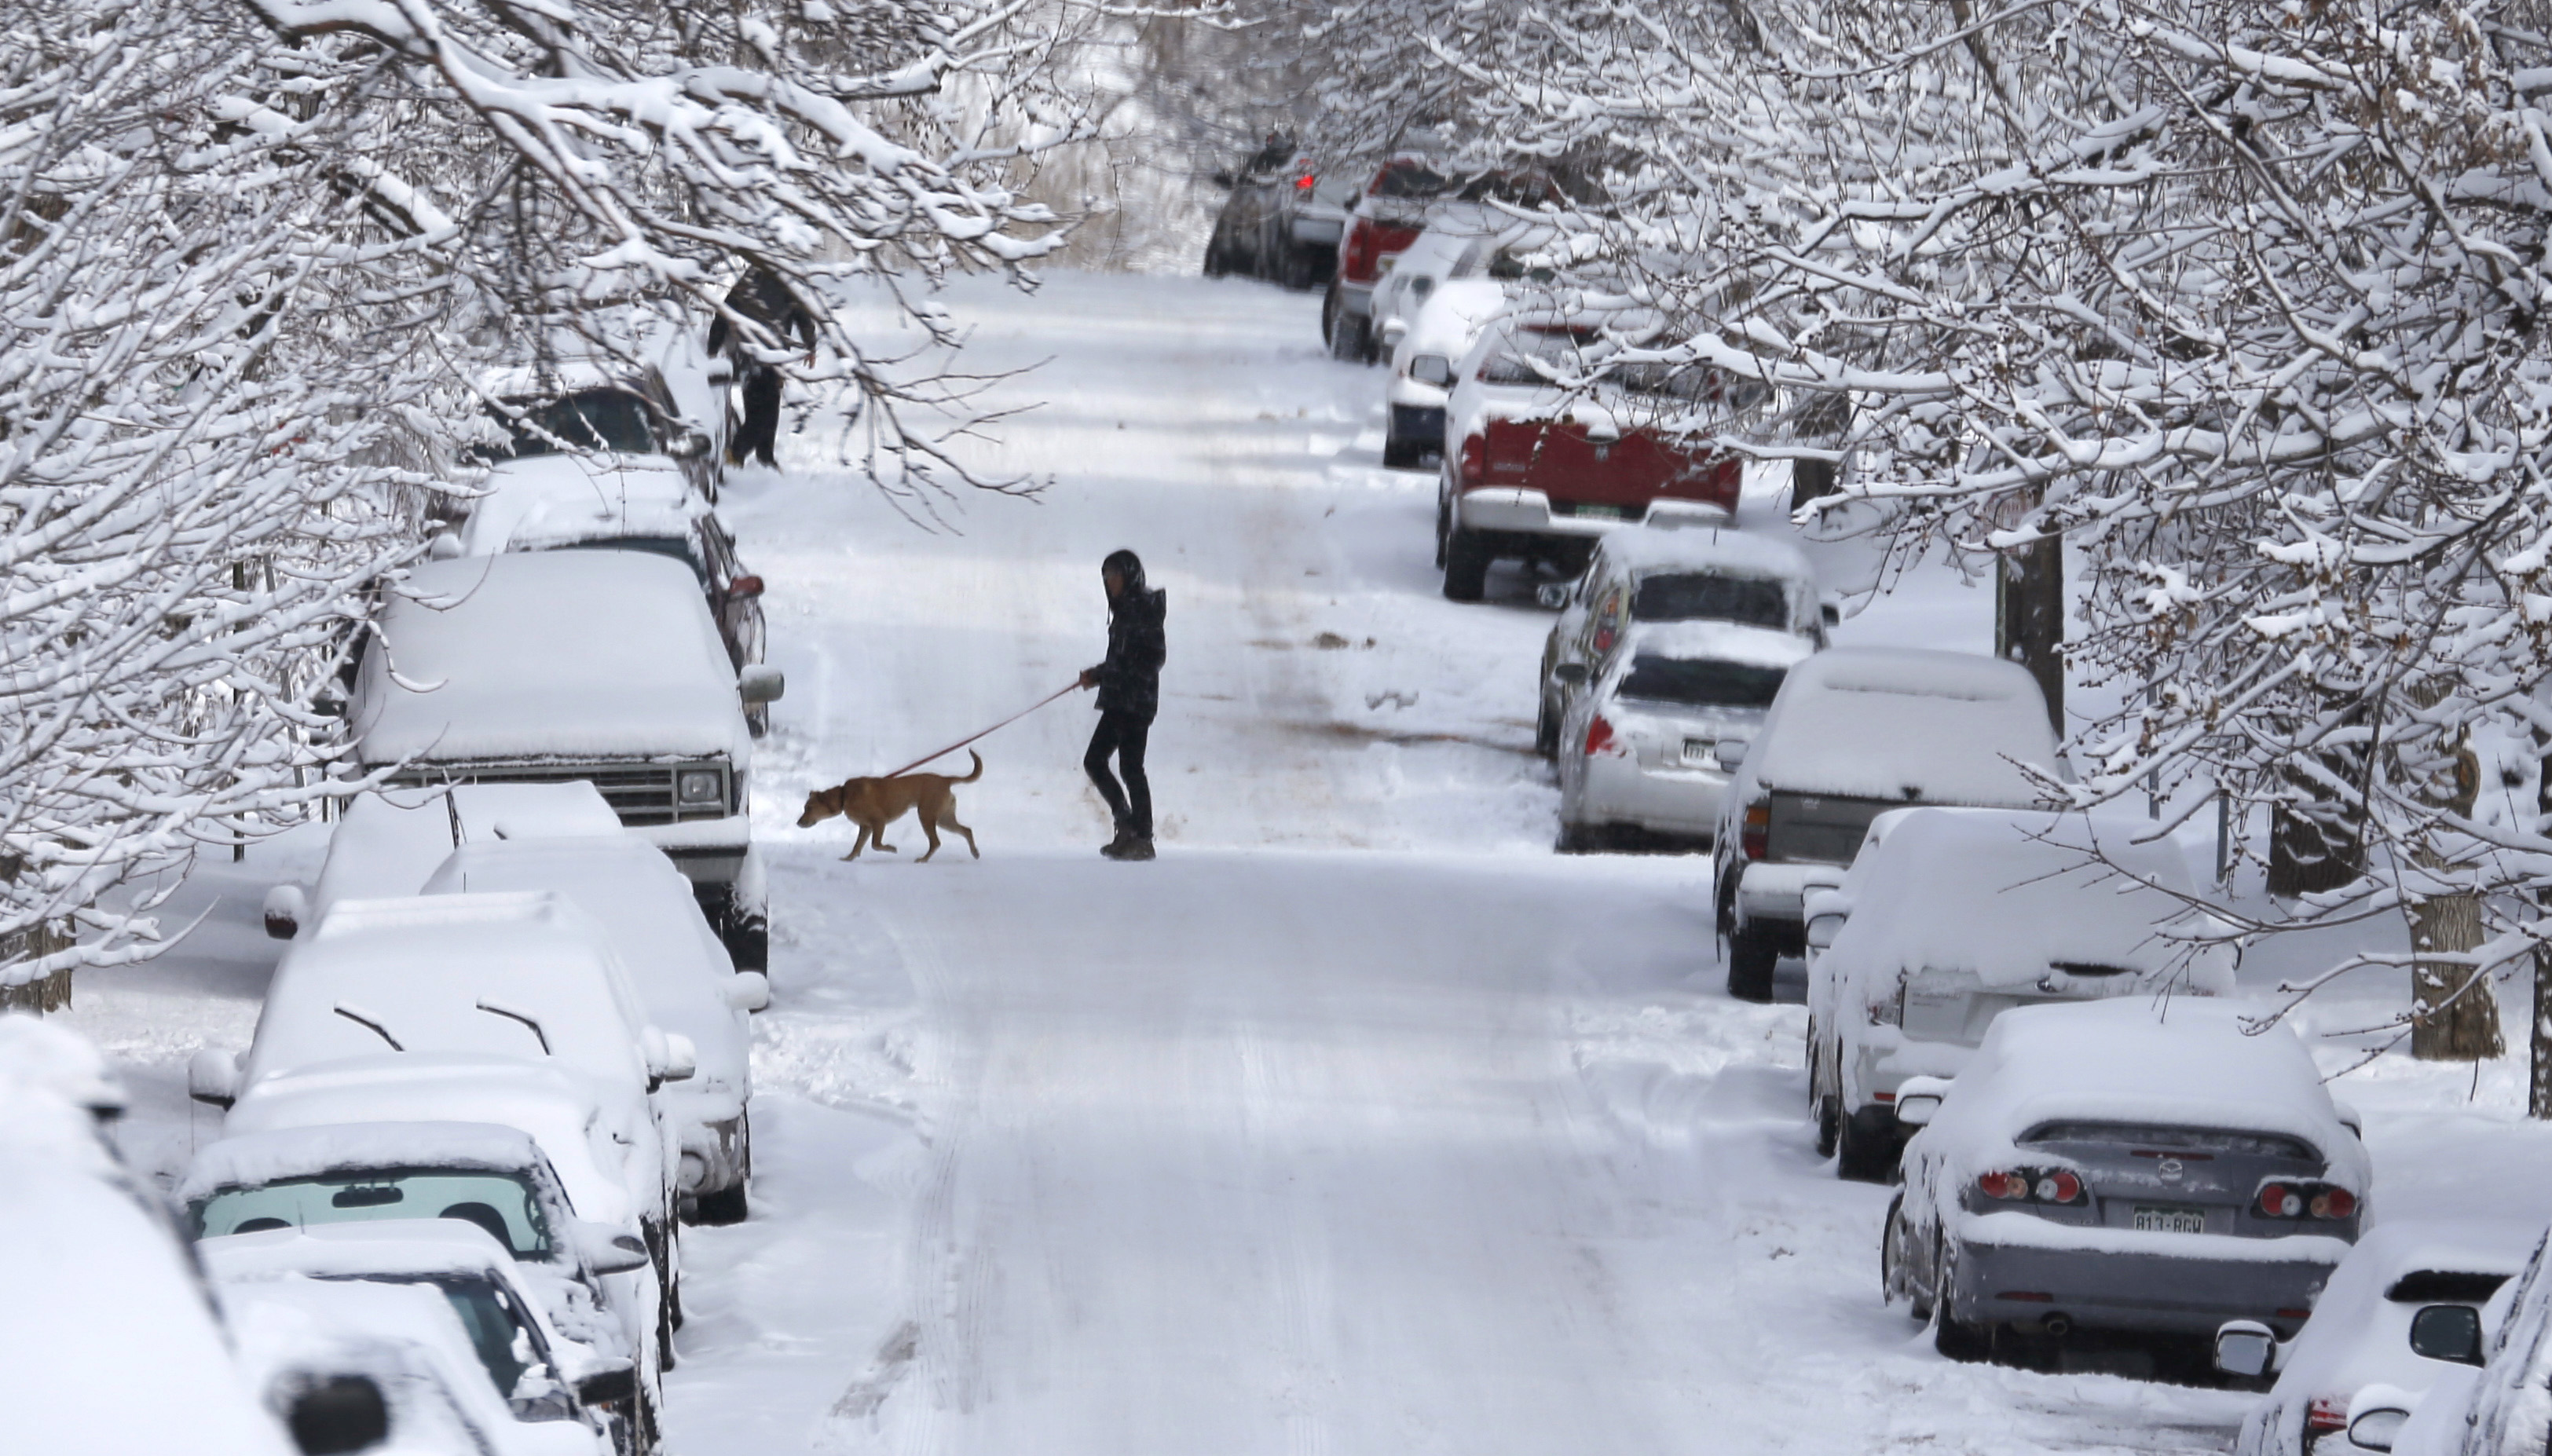 Photo: Snow in Denver on Feb. 26 (AP Photo)